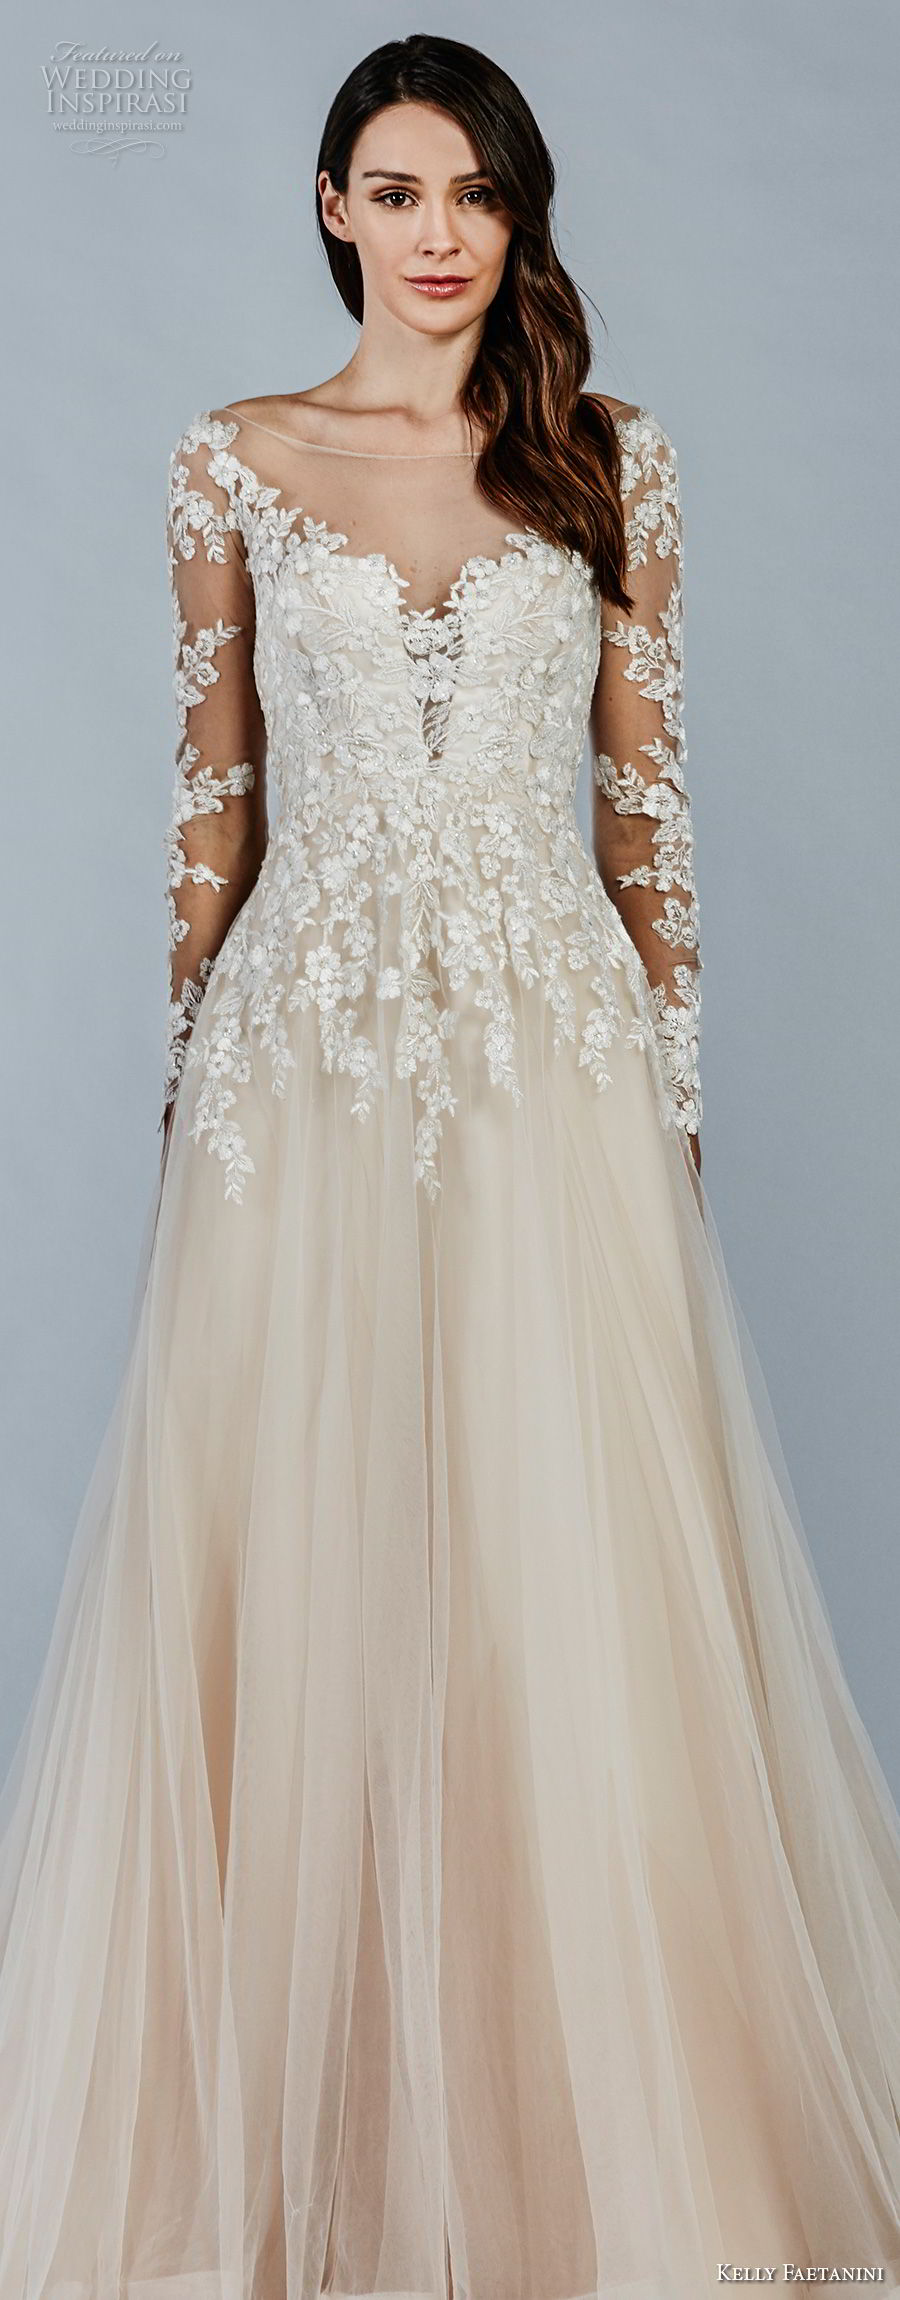 kelly faetanini fall 2018 bridal long sleeves illusion bateau sweetheart neckline heavily embellished bodice romantic blush color a line wedding dress sheer button back chapel train (14) lv